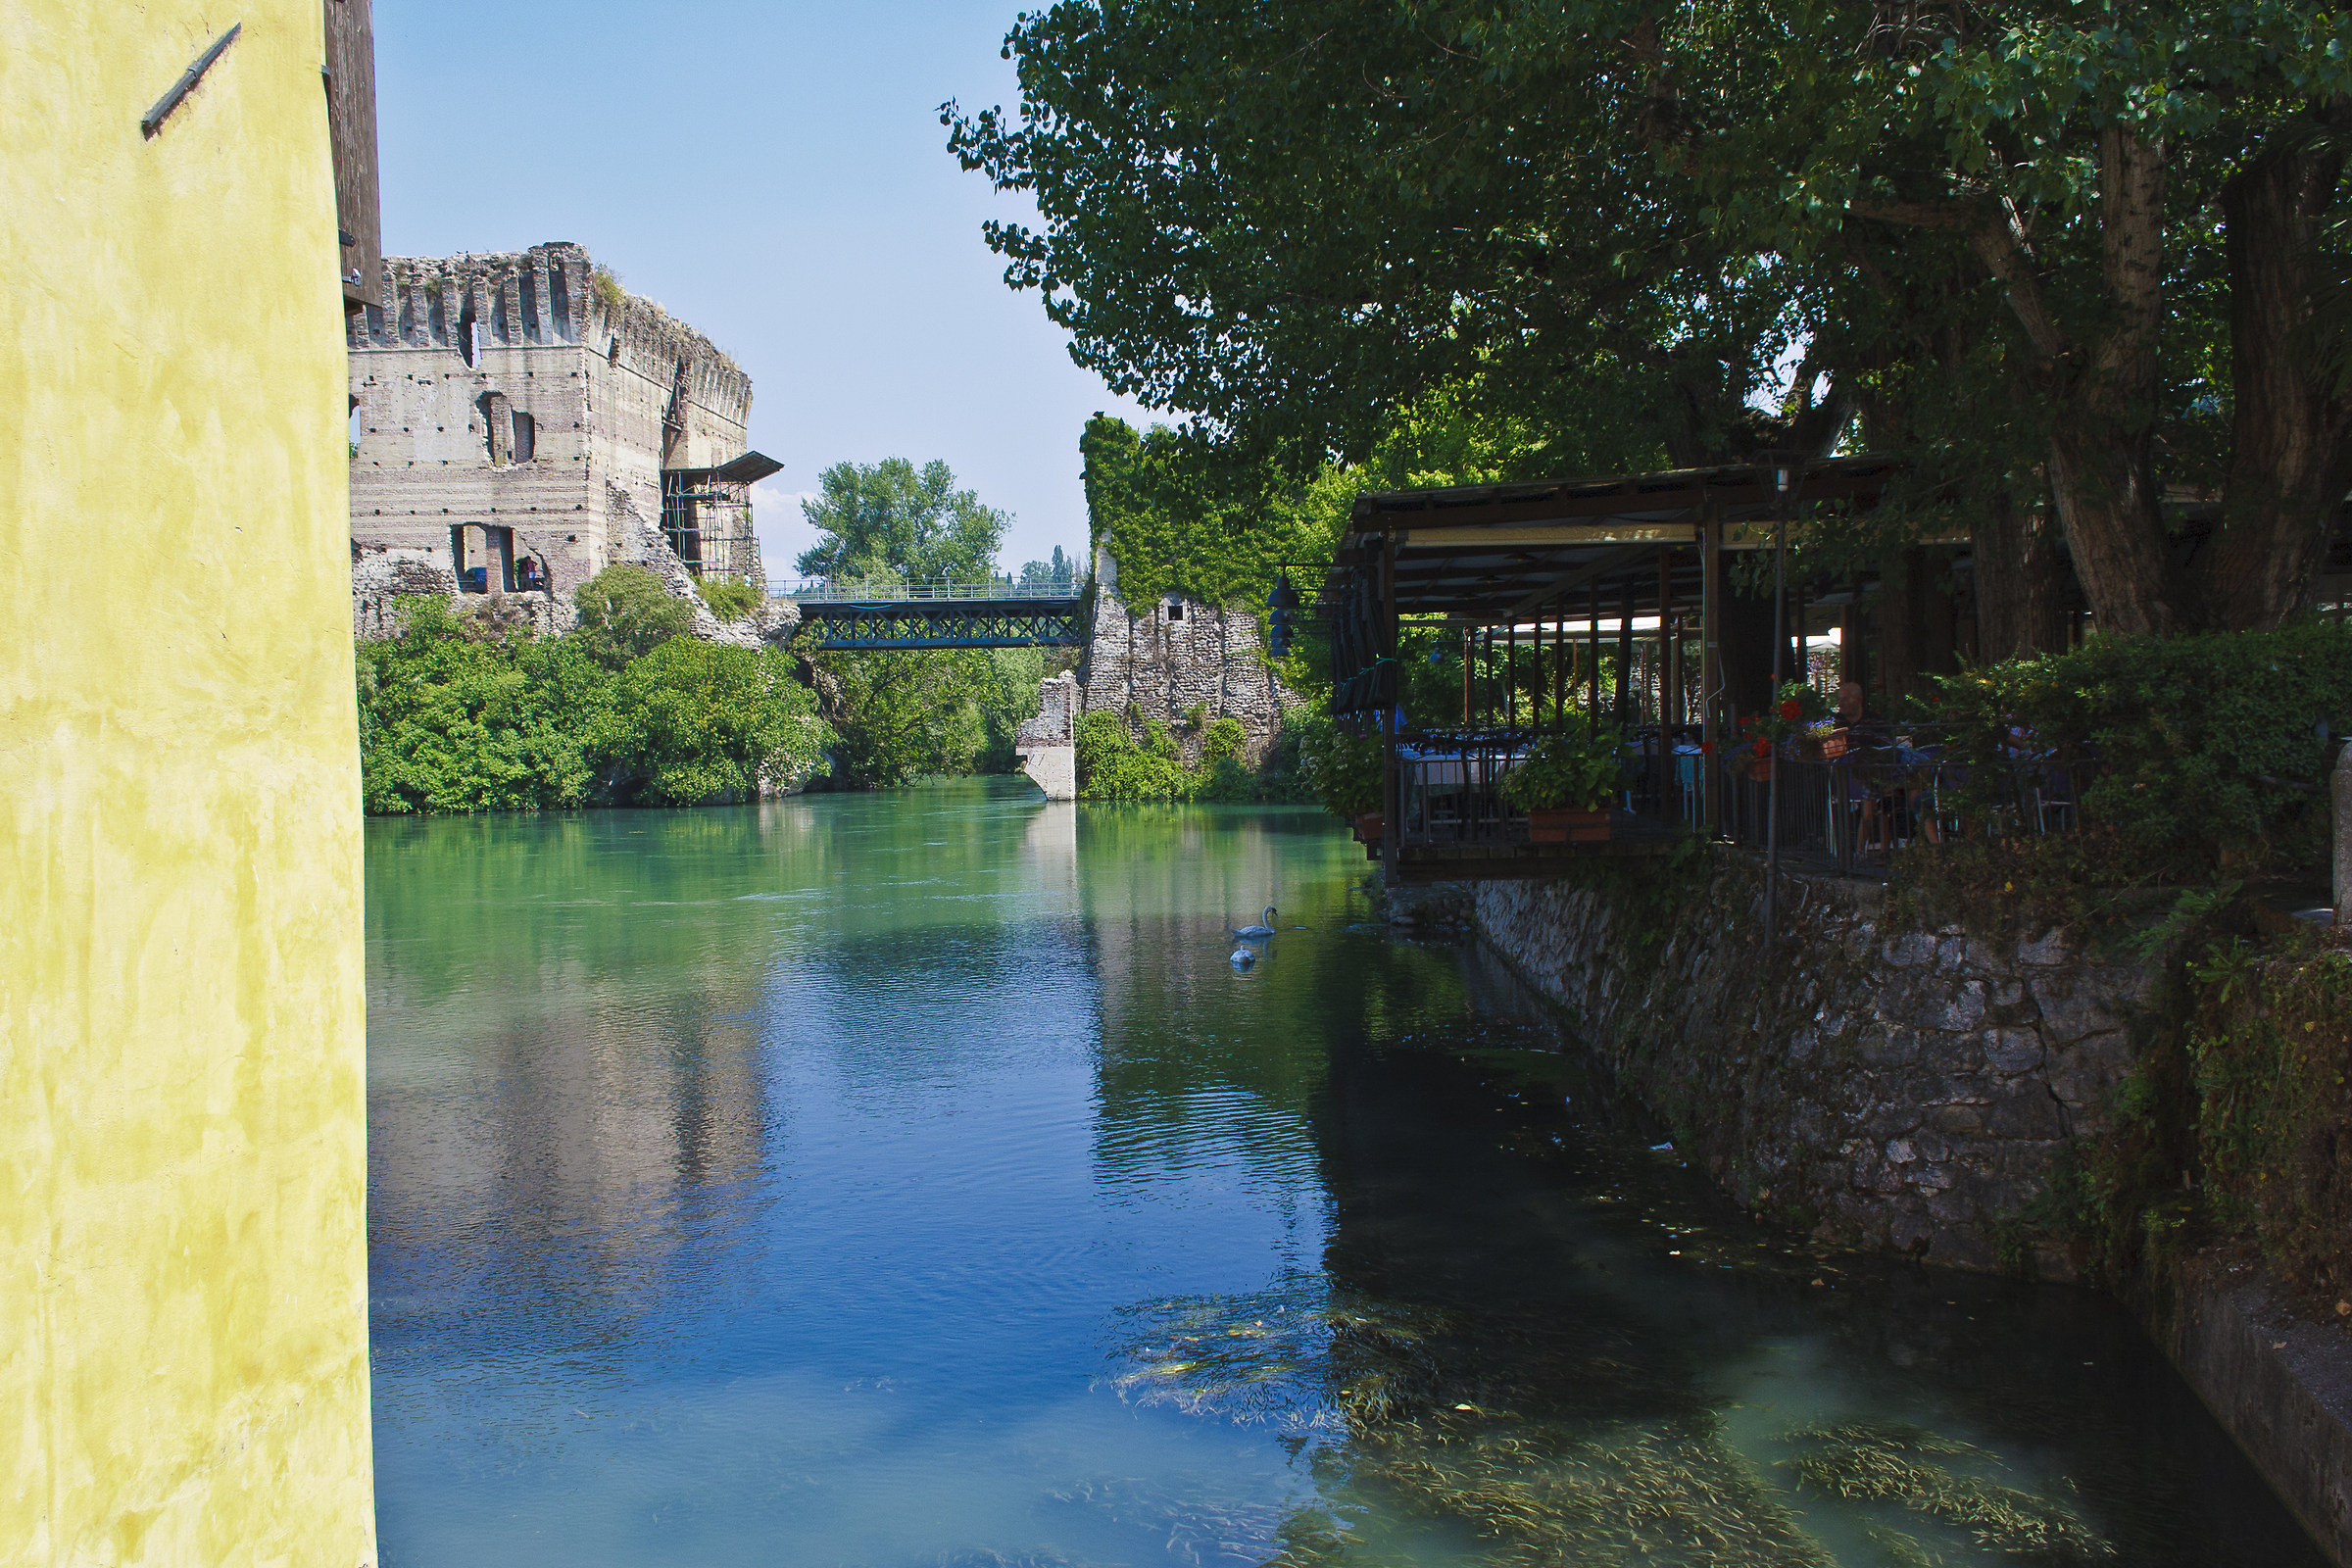 Borghetto - The river Mincio...